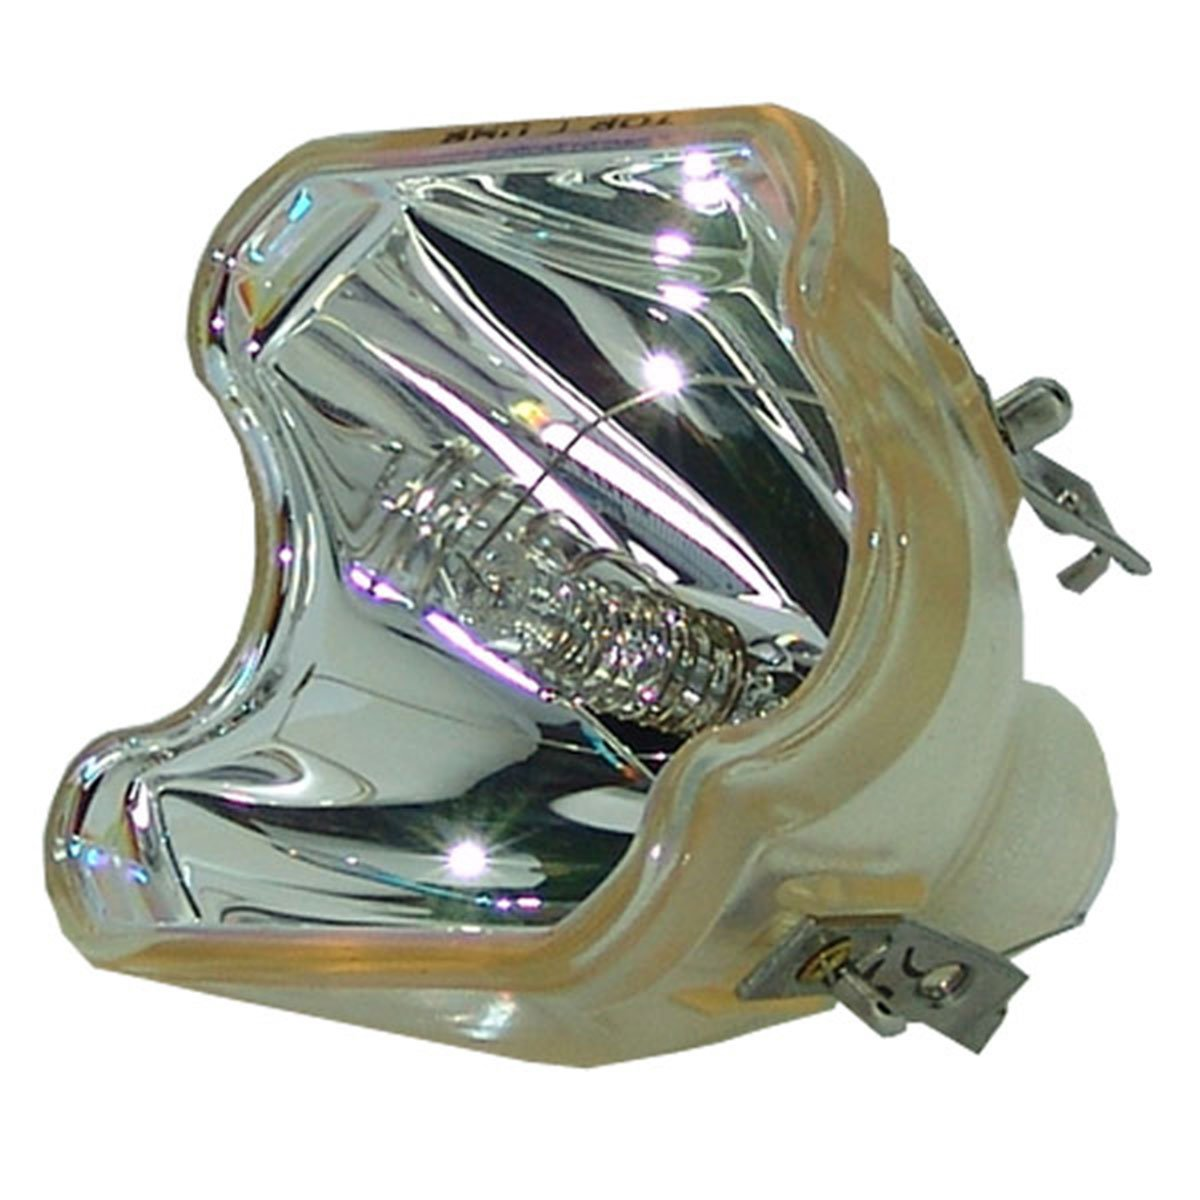 オリジナルフィリップスプロジェクター交換用ランプ Infocus SP-LAMP-017用 Platinum (Brighter/Durable) Platinum (Brighter/Durable) Lamp Only B07KTKZ9N2